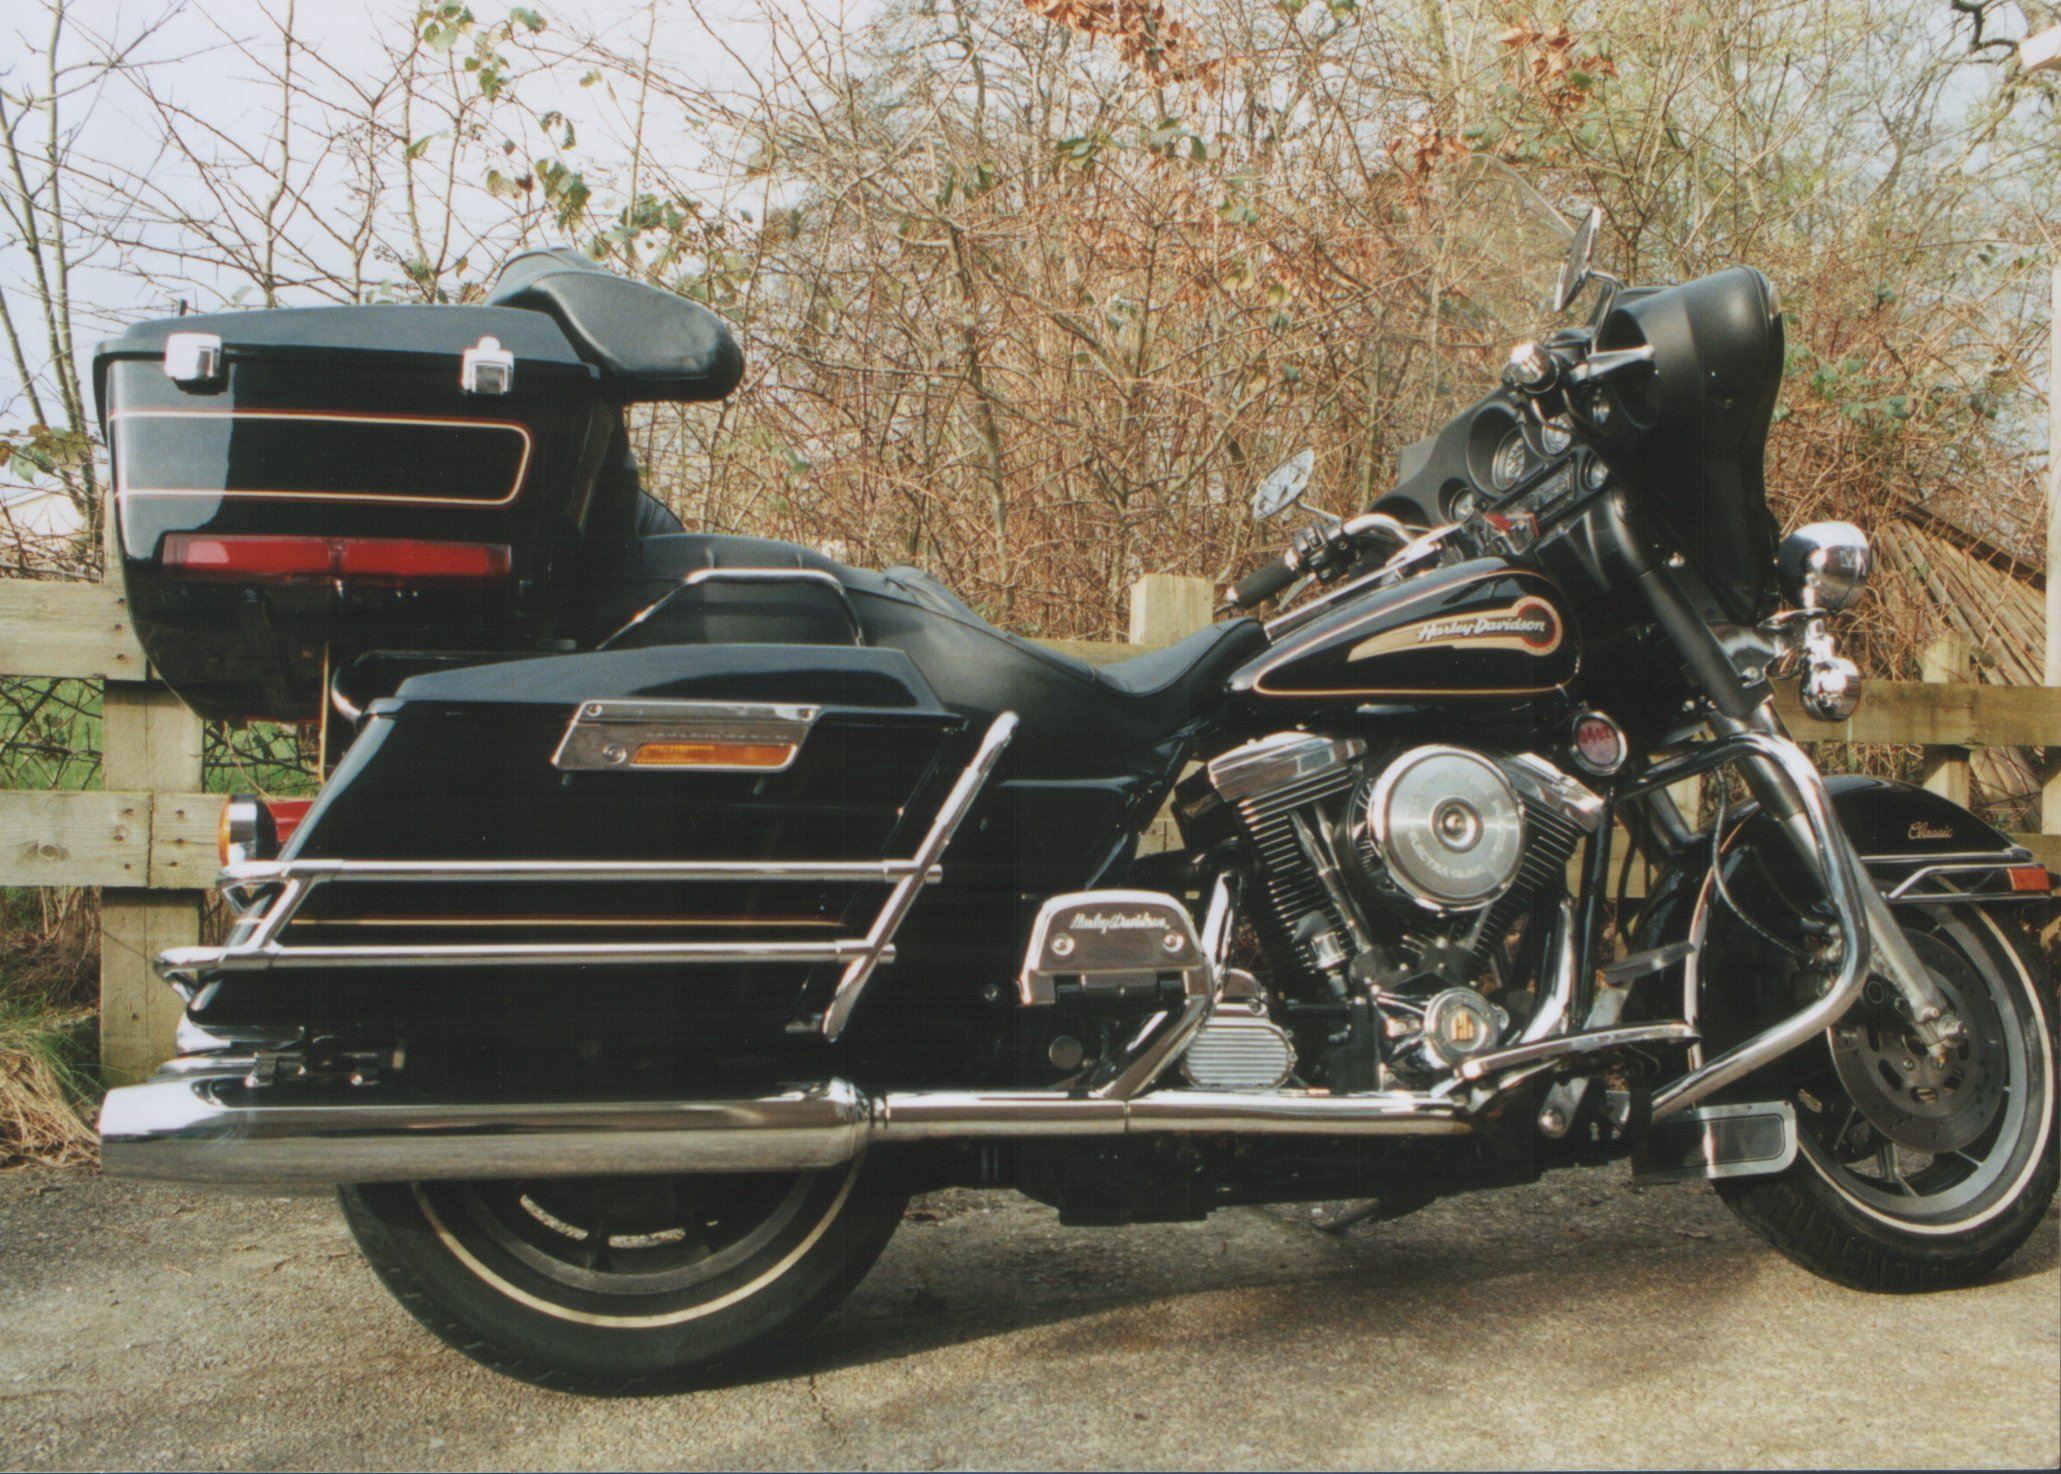 Harley-Davidson FLHTC Electra Glide Classic 2002 #9